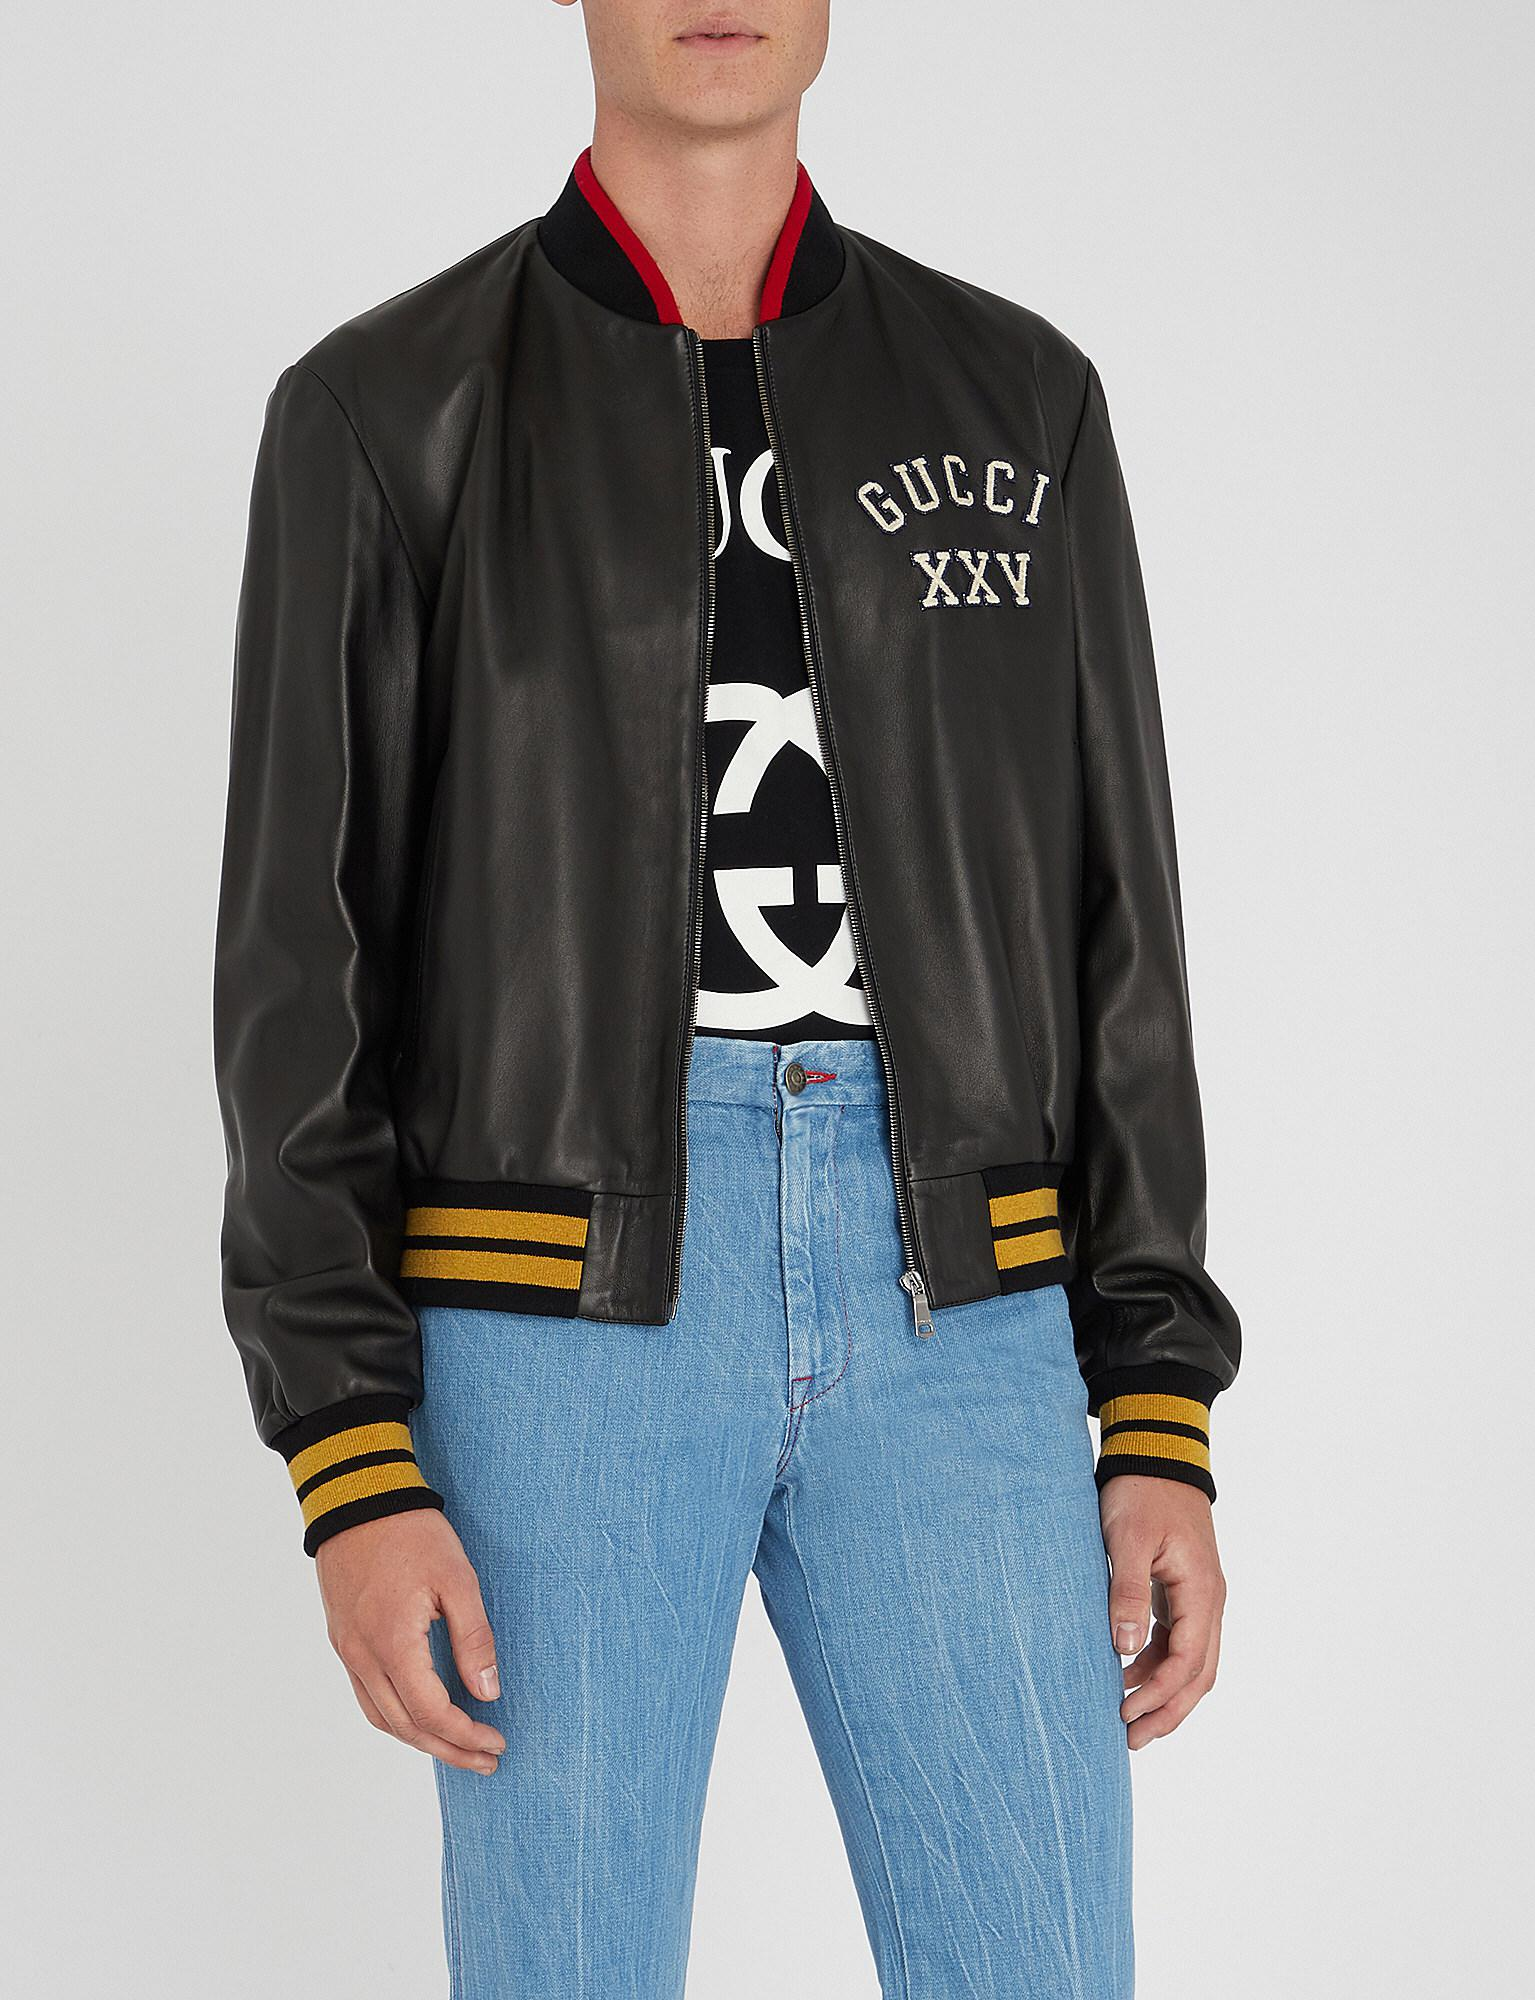 08ea1ea824a84 Gucci Pirates Leather Bomber Jacket in Black for Men - Lyst